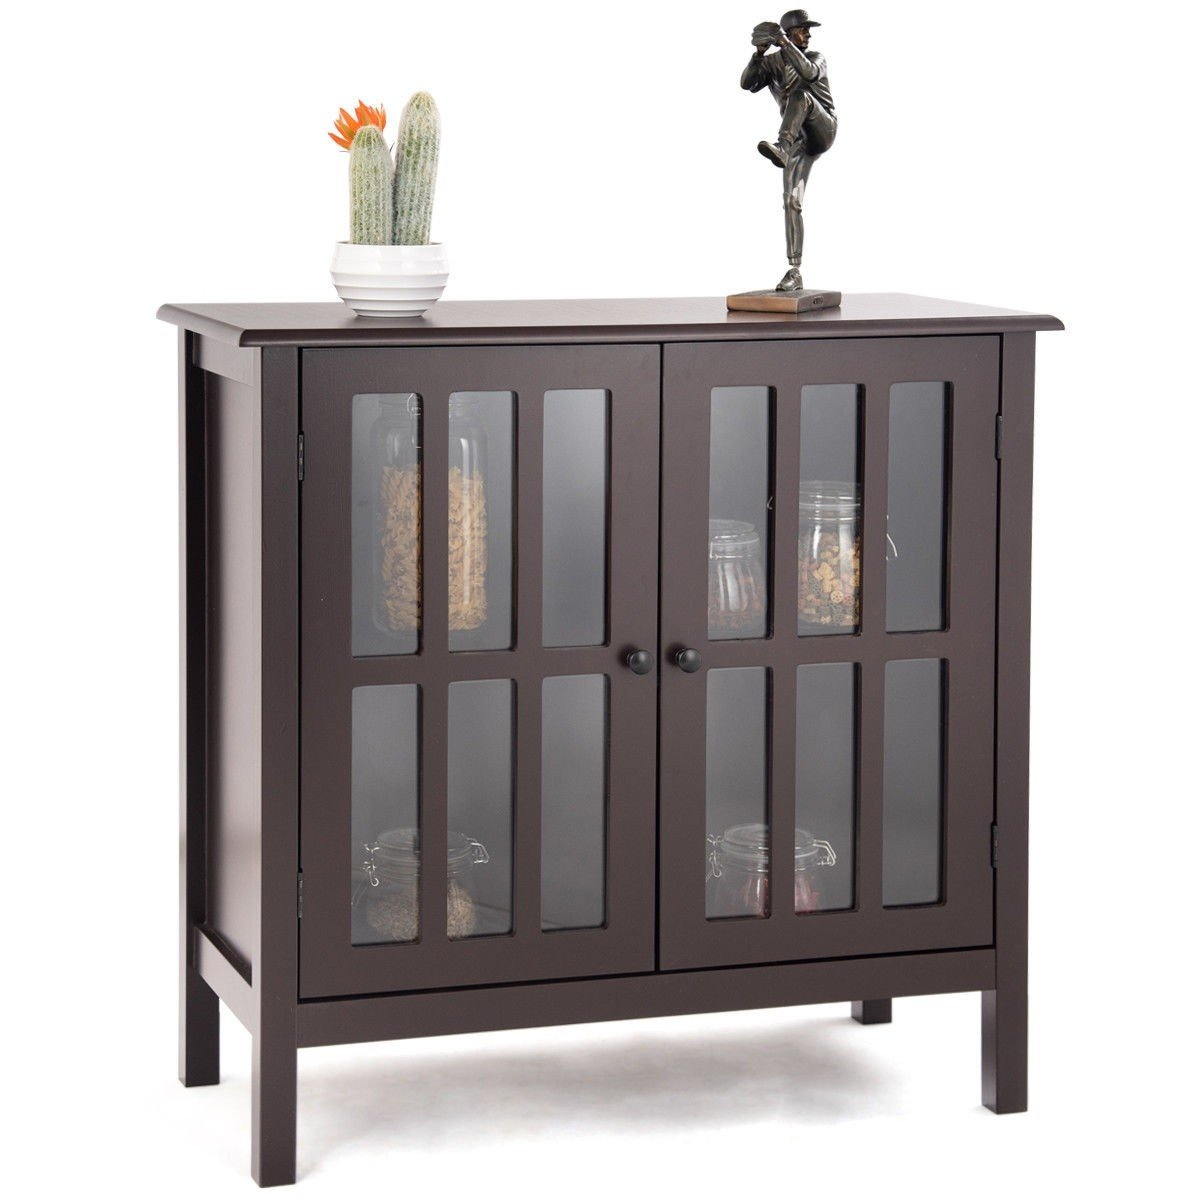 Custpromo Storage Buffet Cabinet Glass Door Sideboard Console Table Kitchen Dining Room Furniture (Brown)